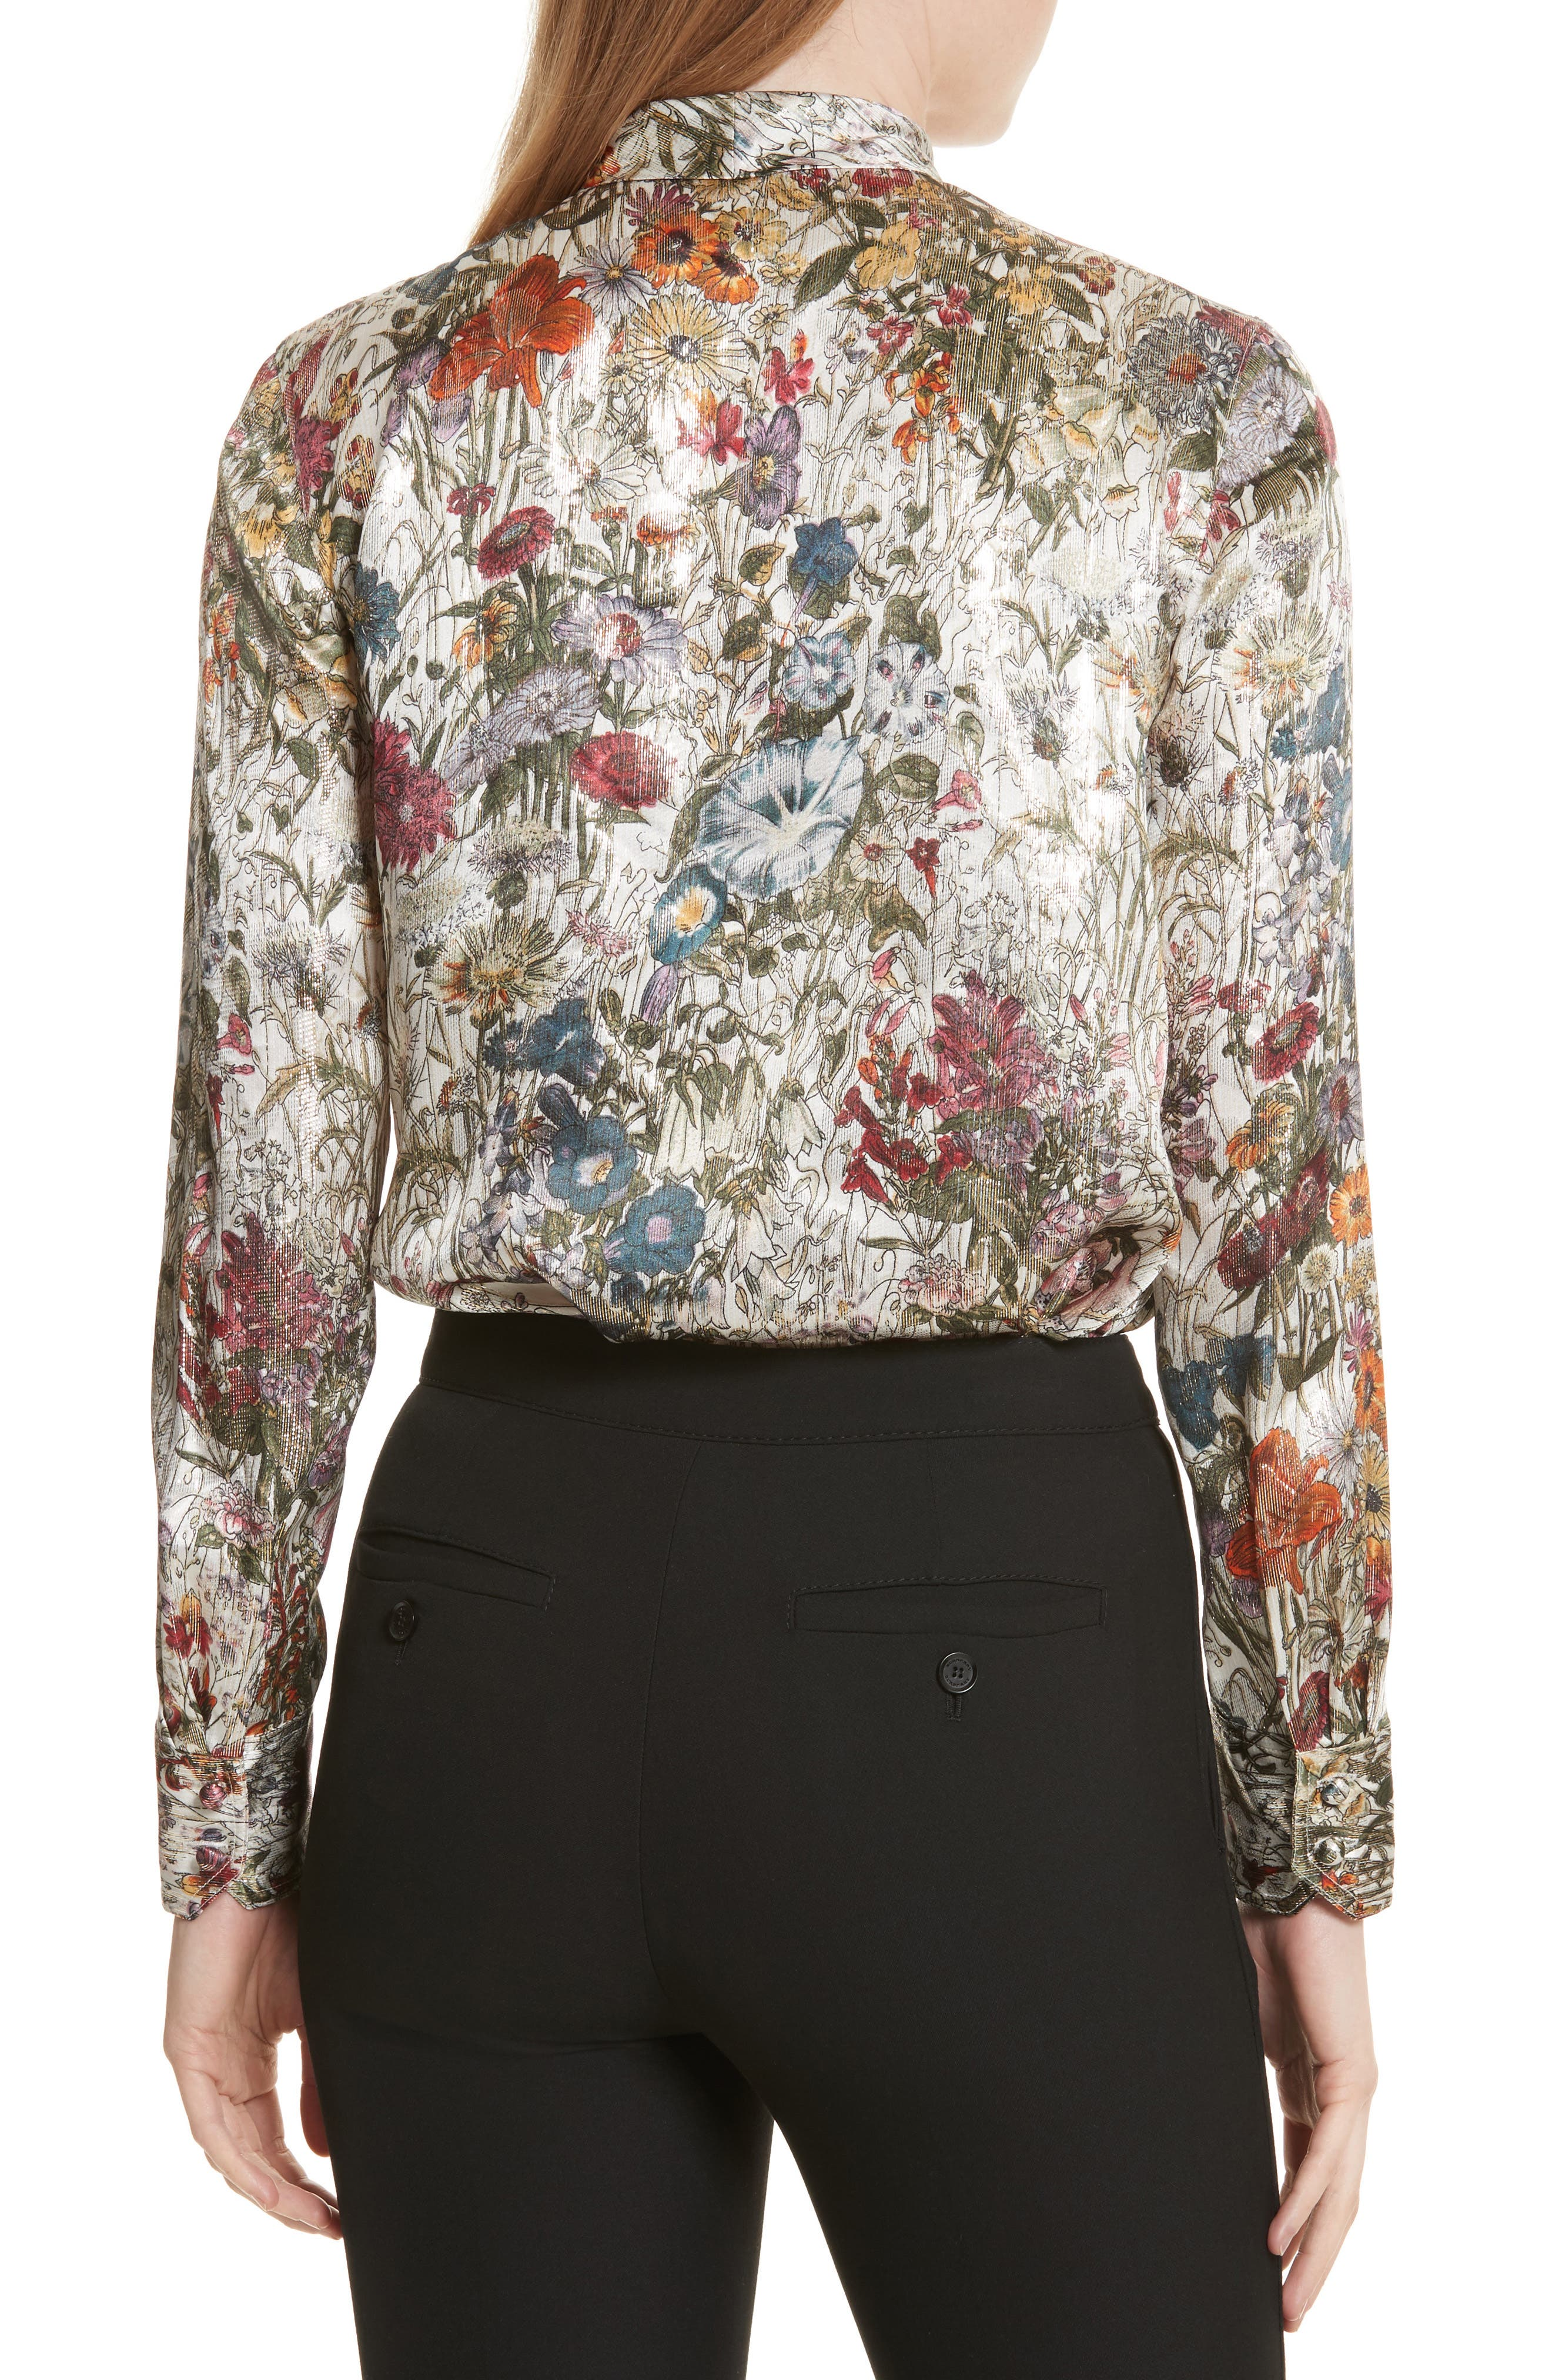 Alternate Image 2  - Tory Burch Tie Neck Metallic Floral Blouse